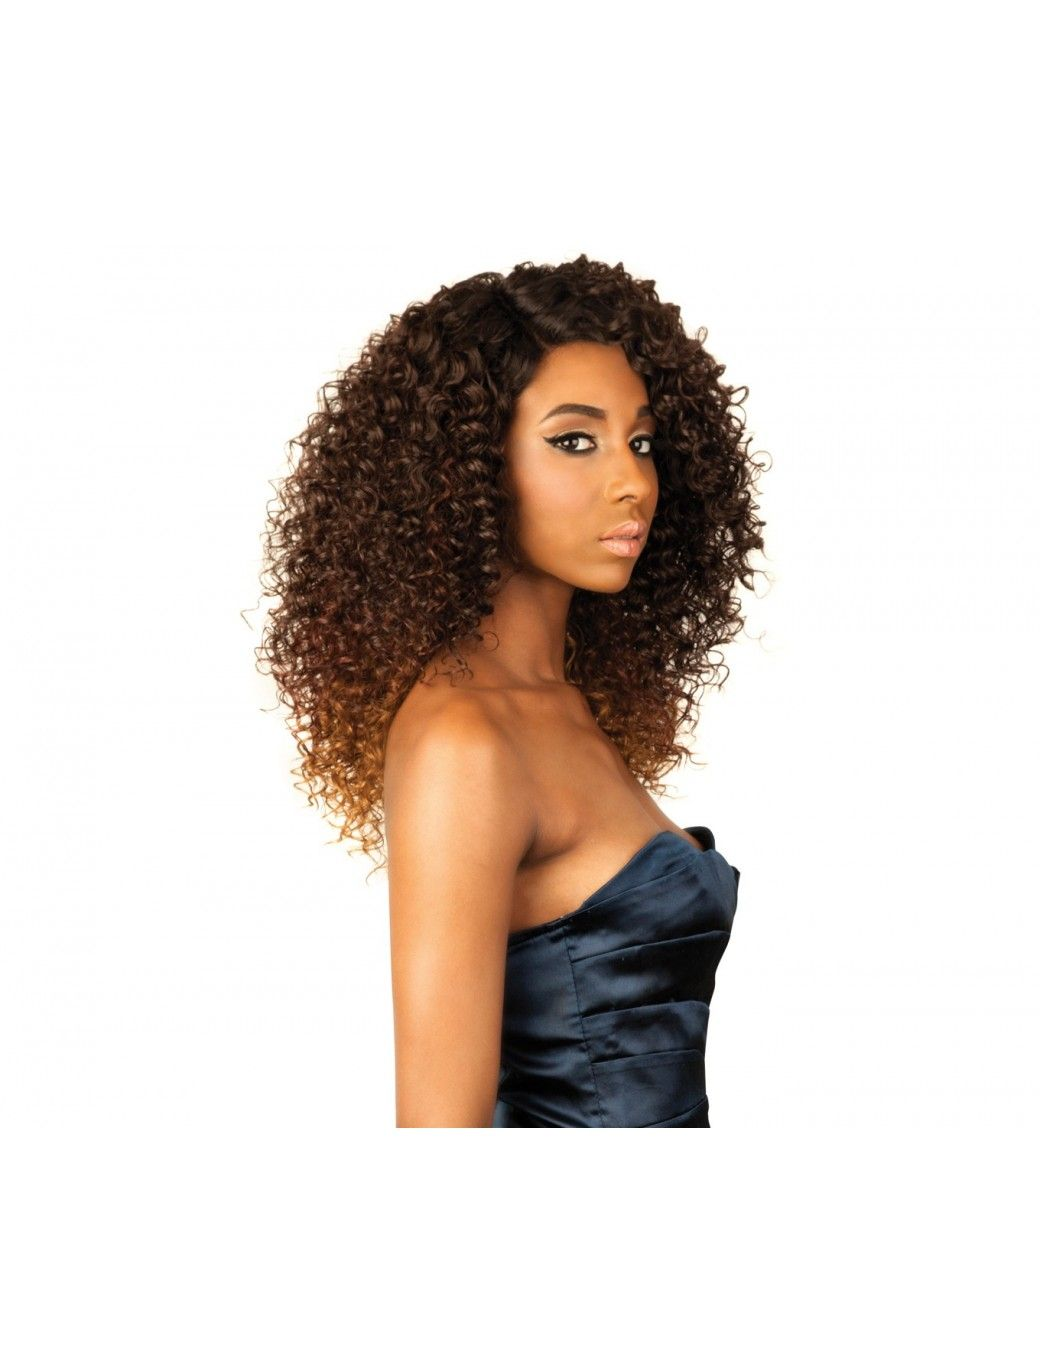 Isis Collection Red Carpet Premiere Lace Front Wig Rcp290 Super